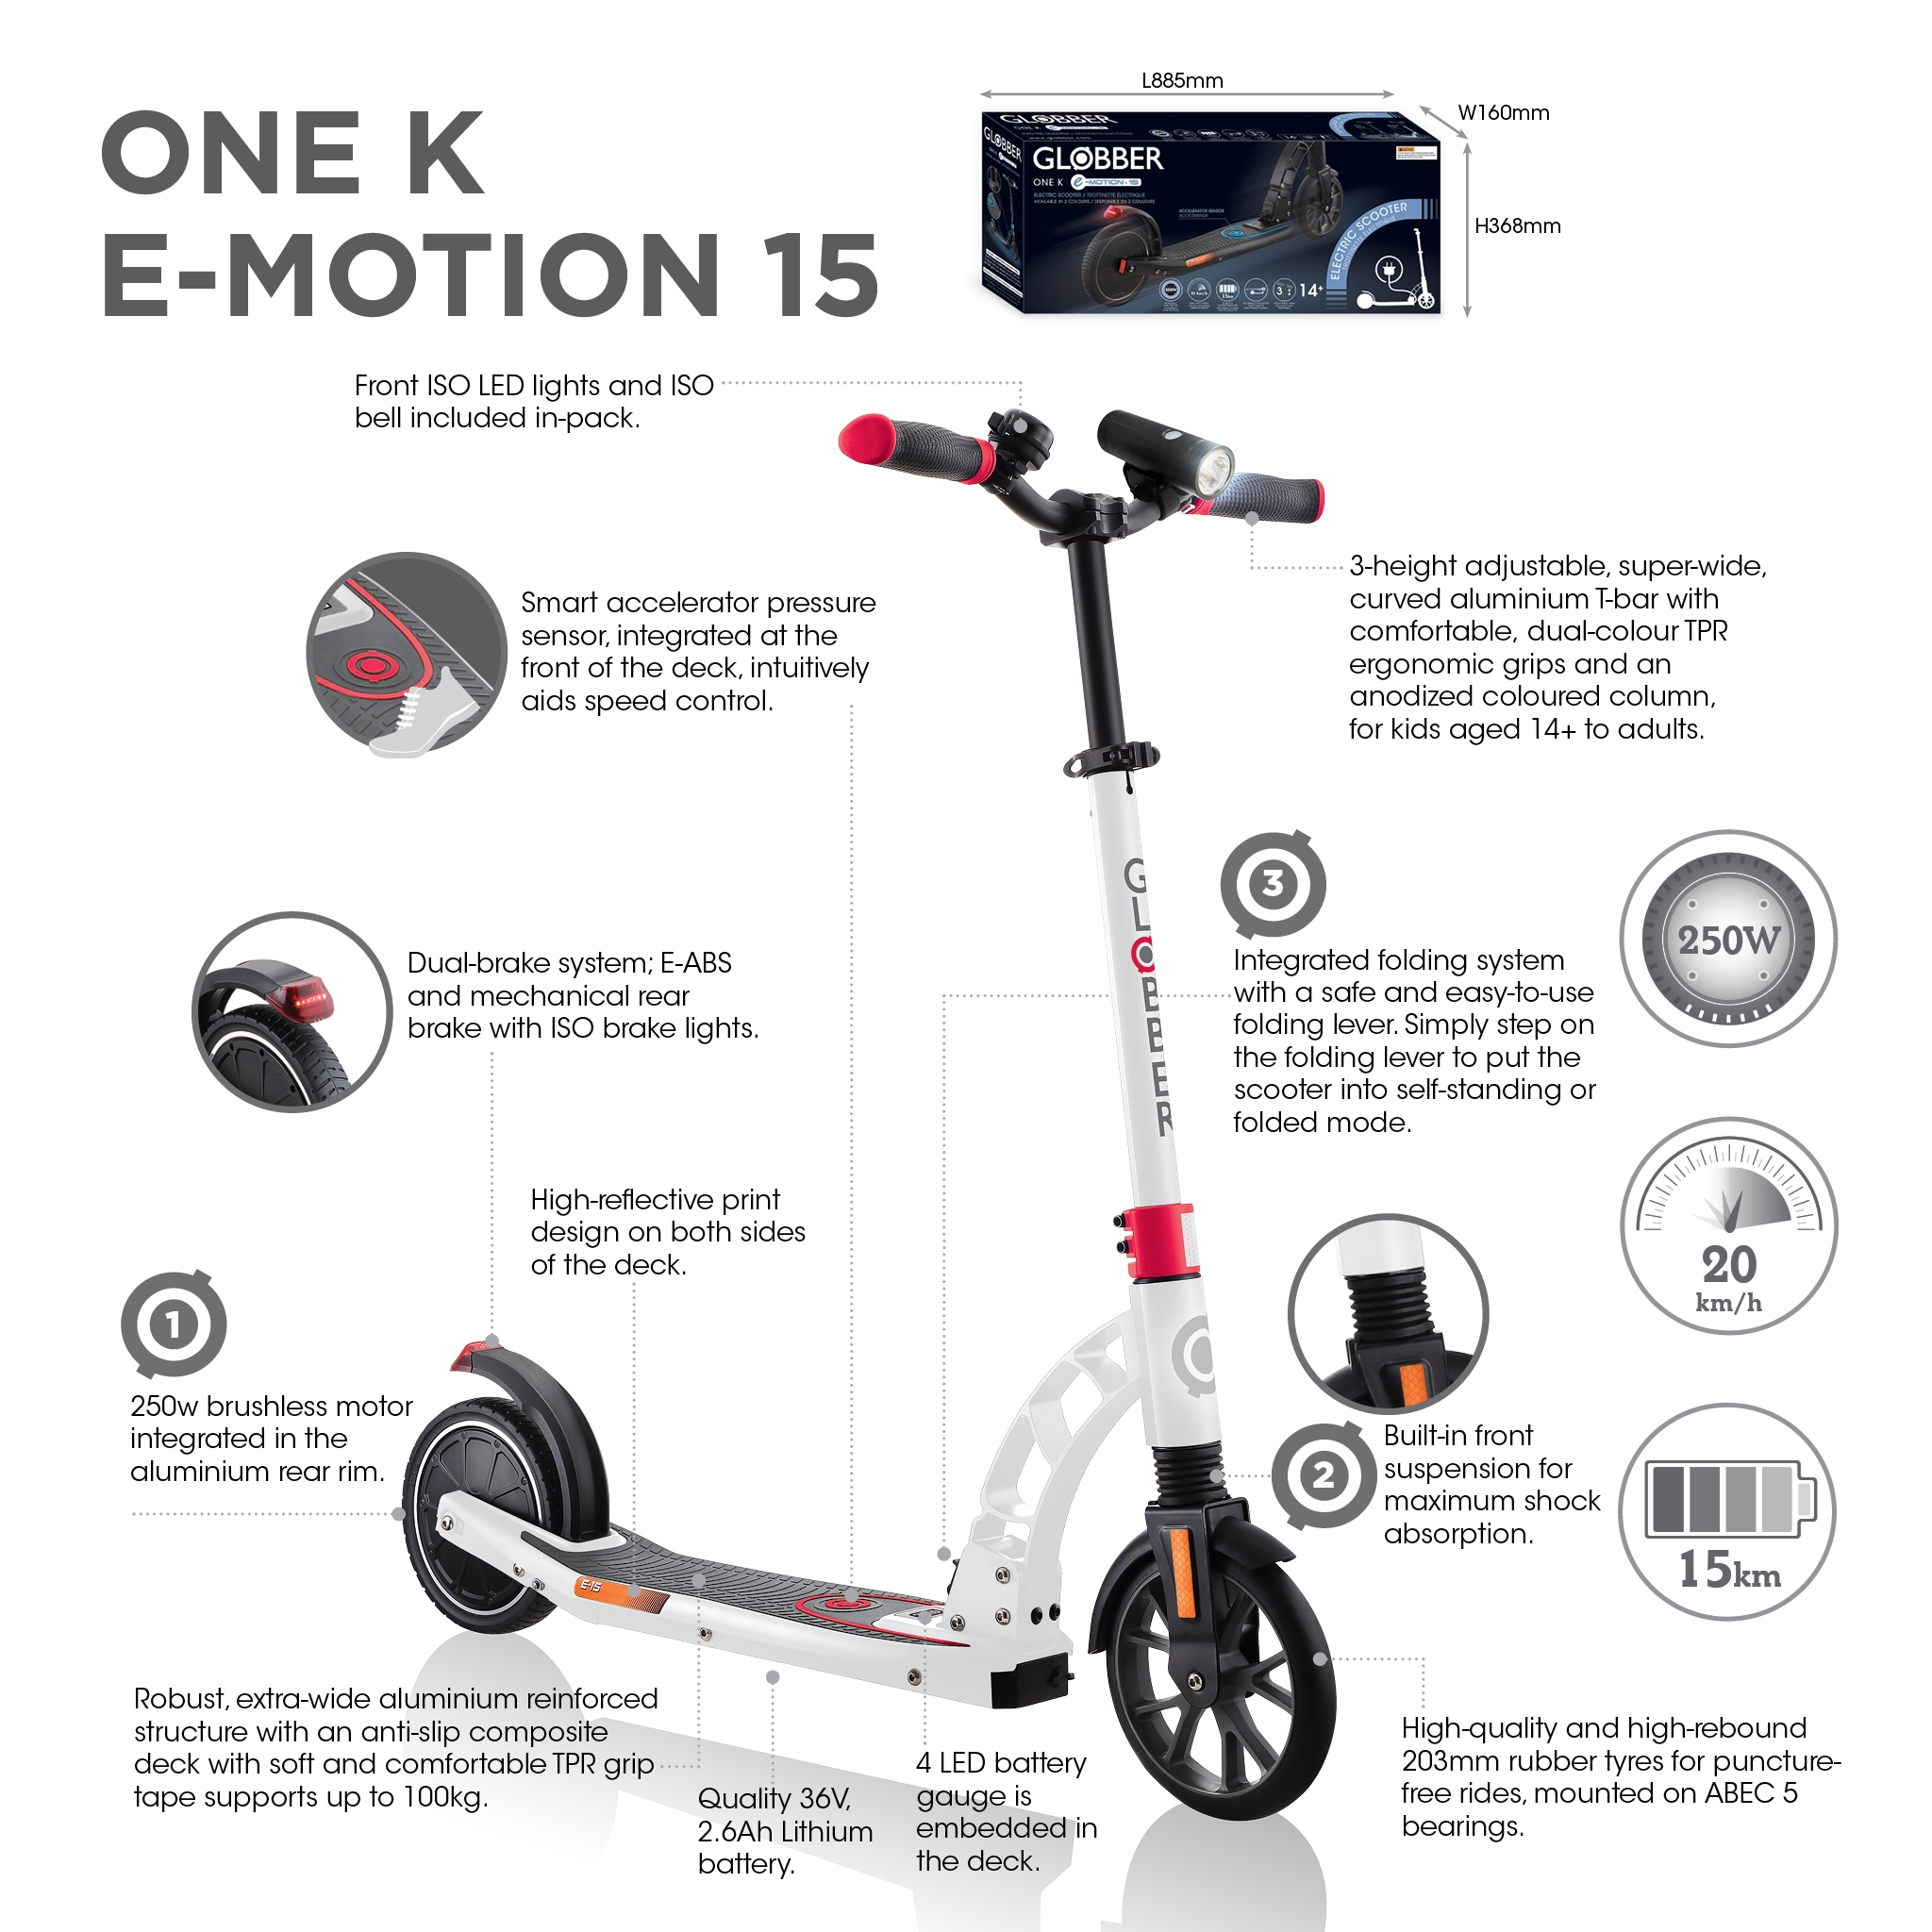 Globber-ONE-K-E-MOTION-15-electric-scooter-with-front-suspension-and-rear-ISO-brake-lights-and-front-ISO-LED-lights 2